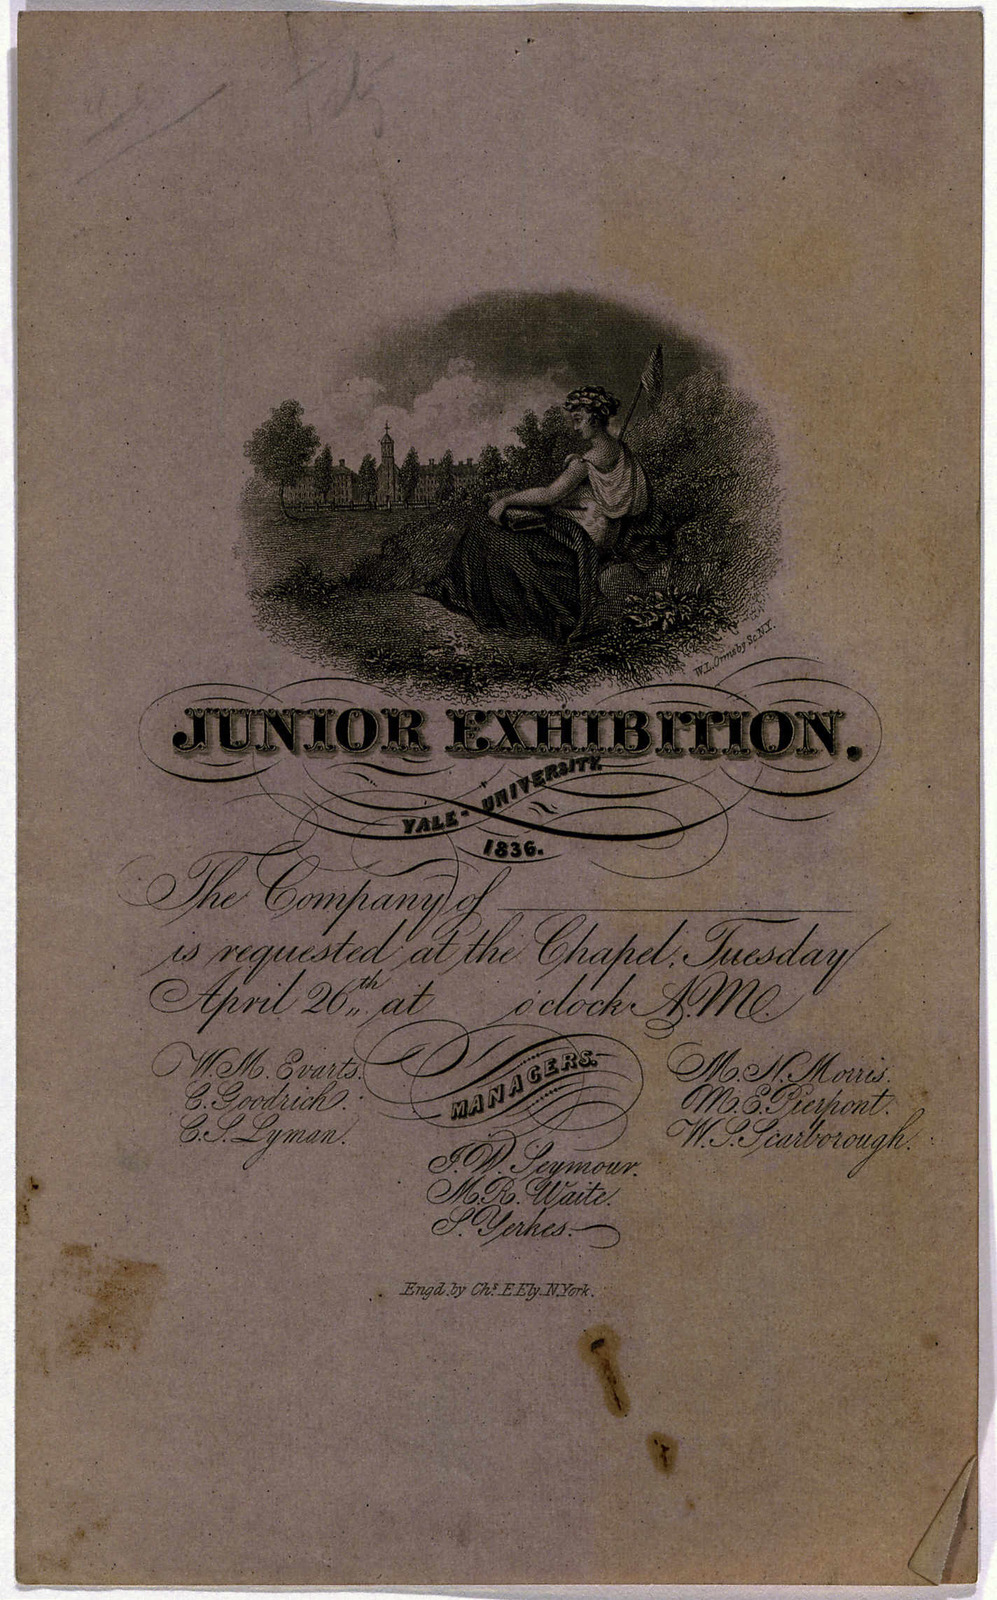 Junior exhibition. Yale University 1836 .... Engd by Chs. E. Ely, N. York [s. l., 1836].